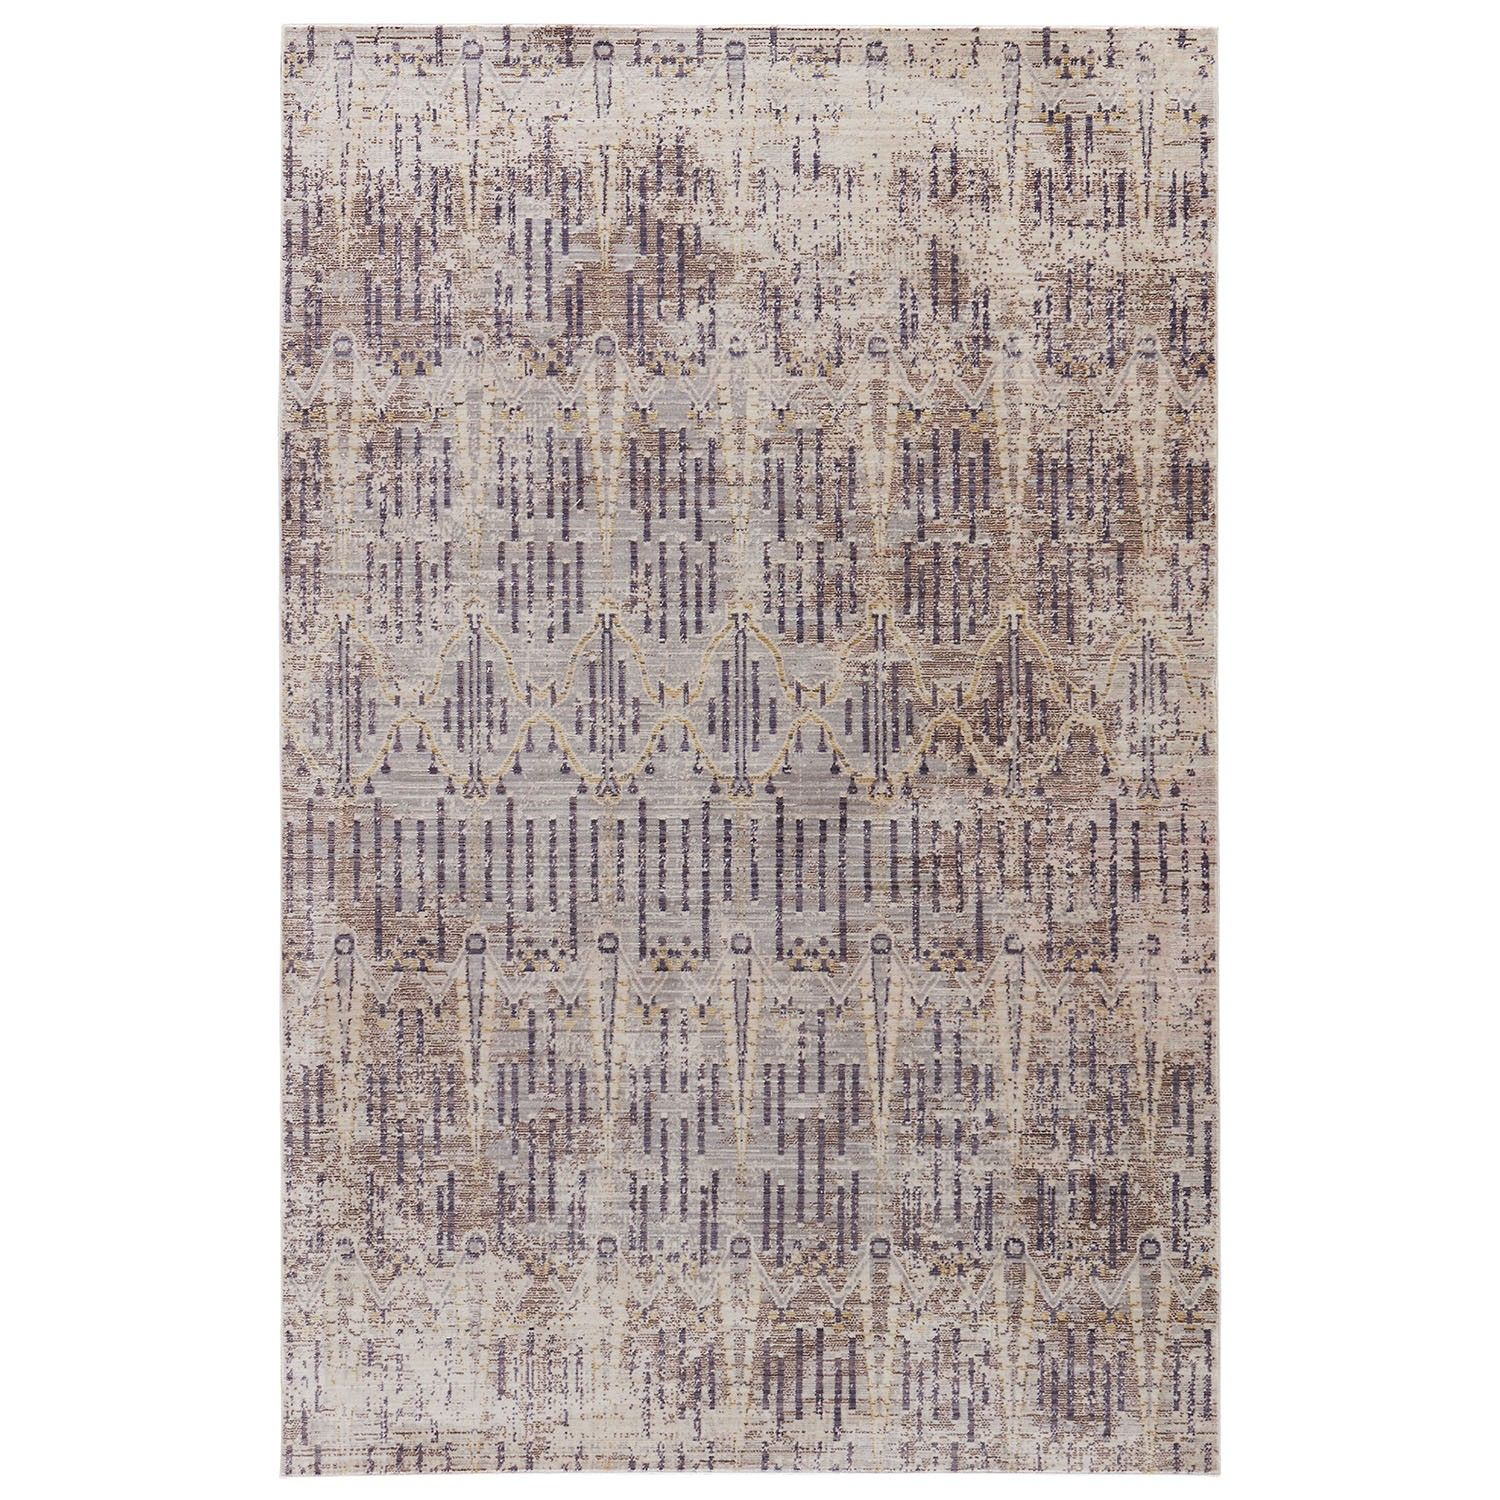 The faded, antique style of our Tularue rug makes a space feel elegant and  exquisite